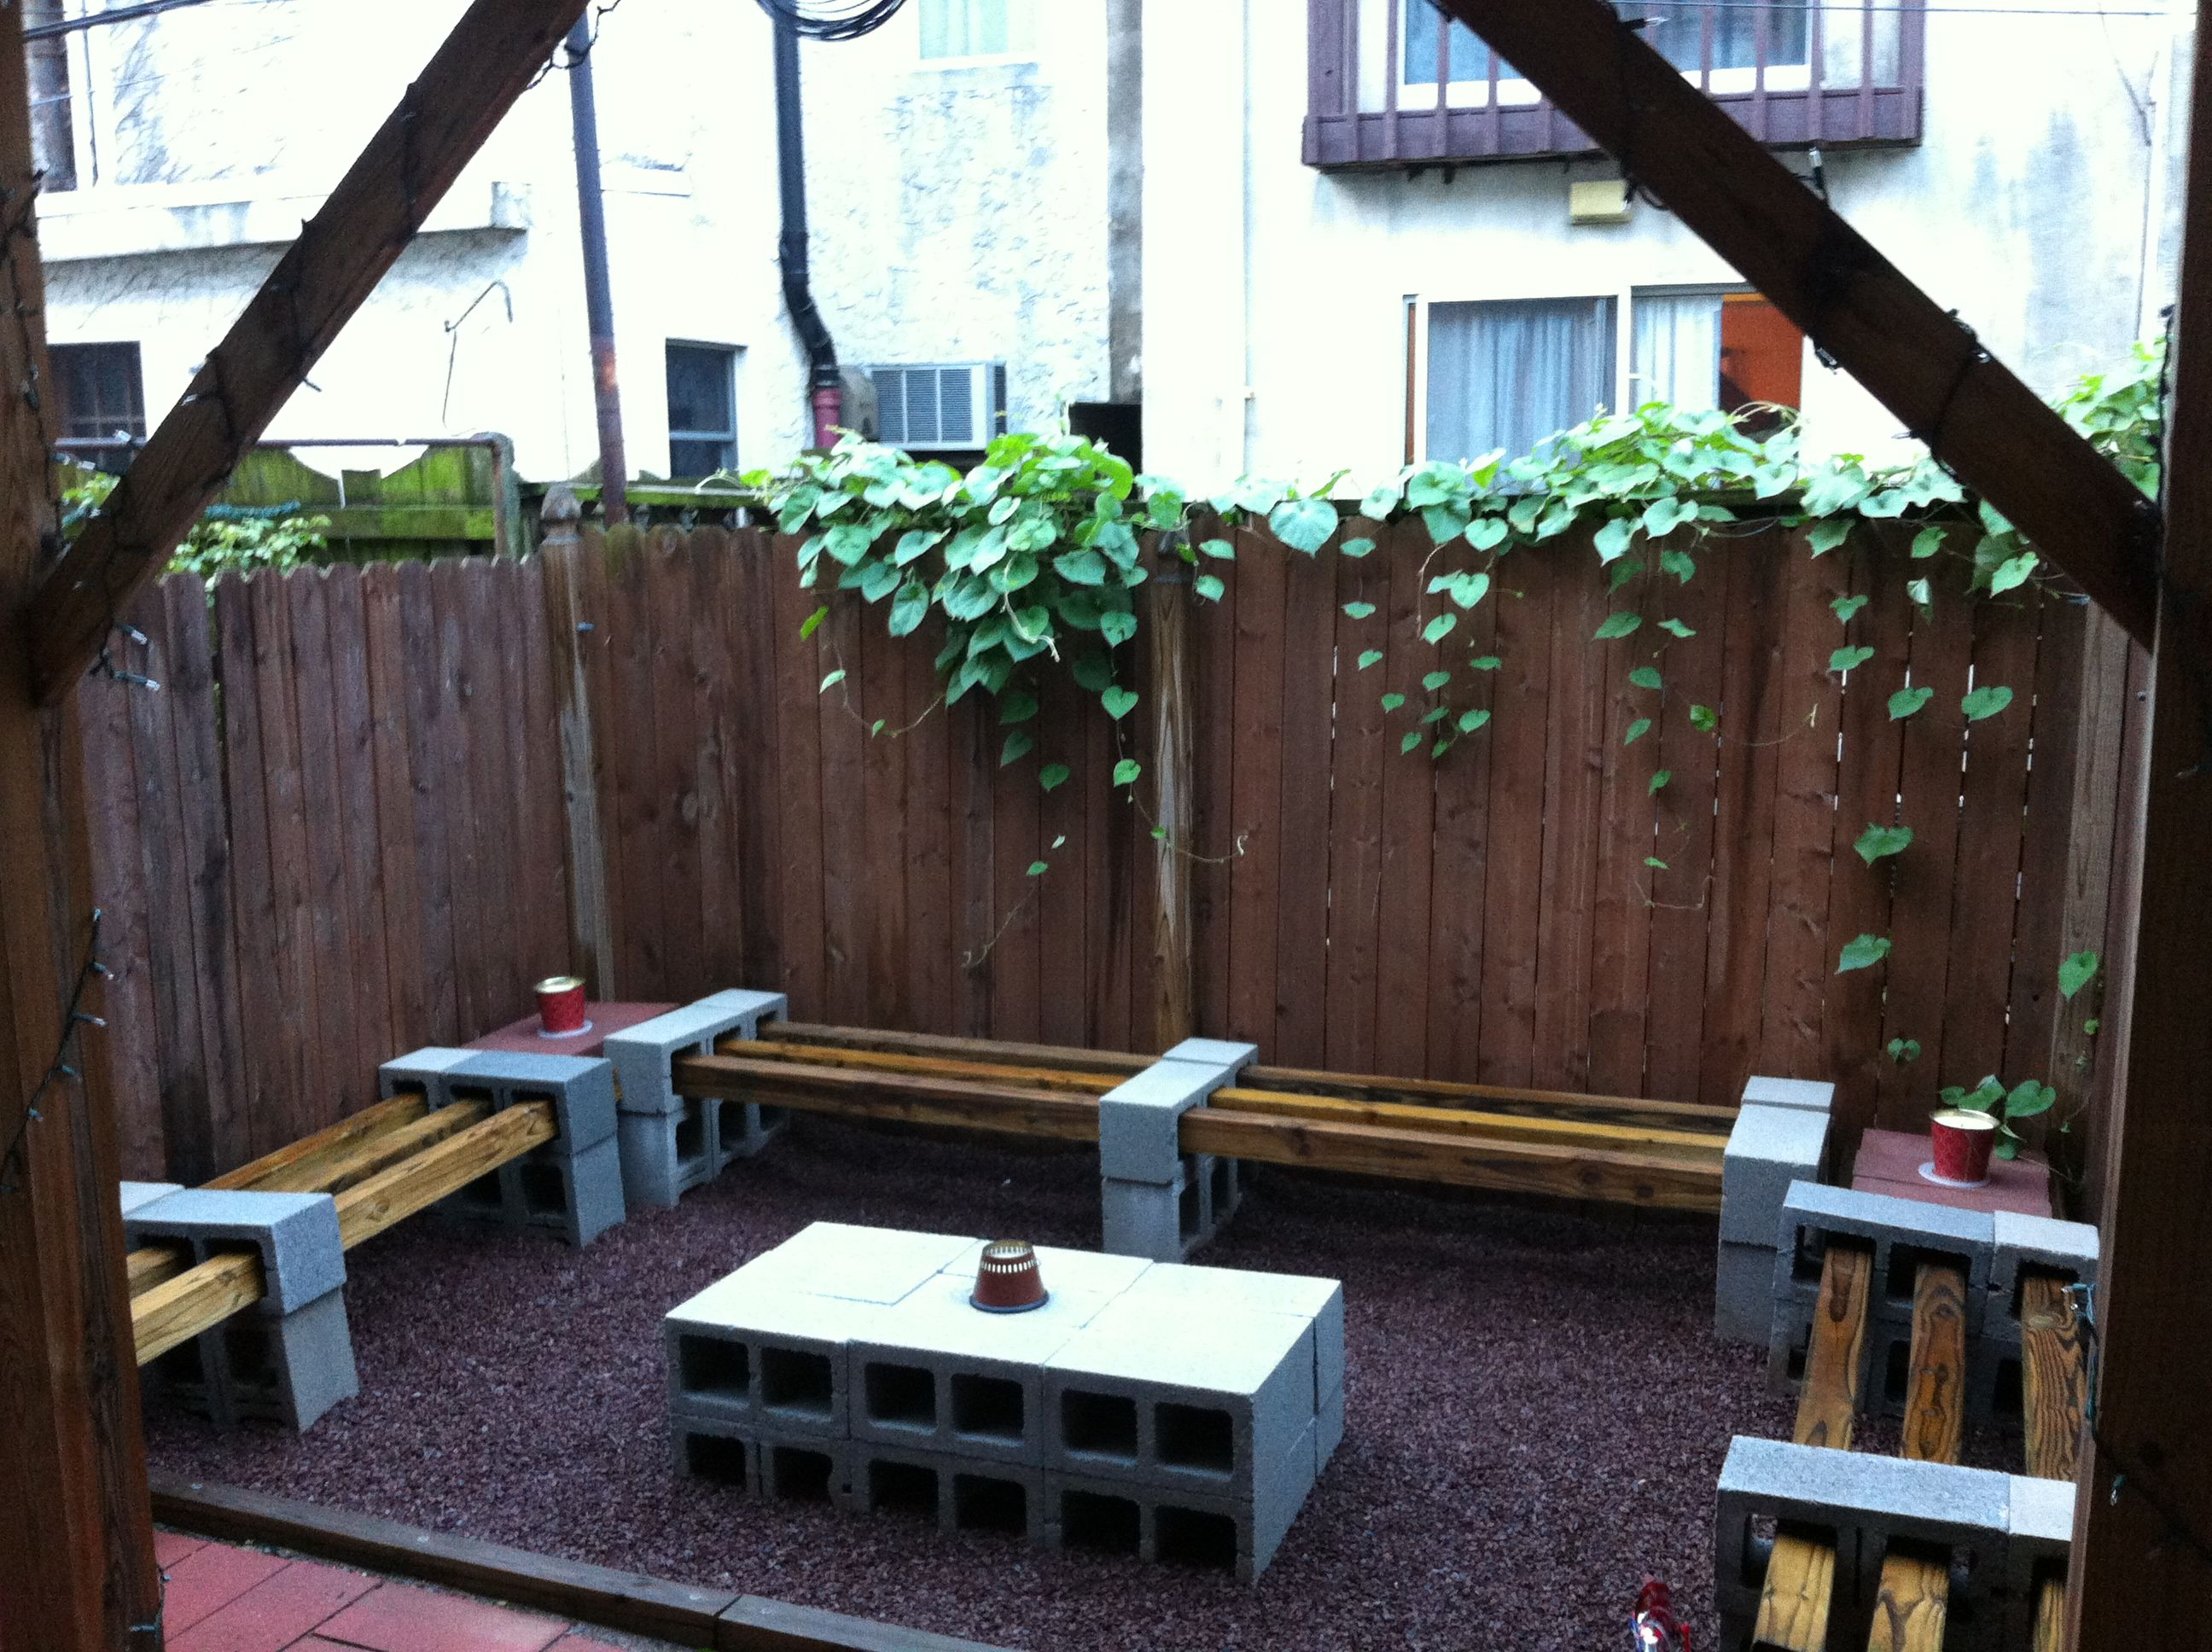 diy cushions for cinder block bench | It's a work in progress and Eric will be making cushions to place on ...